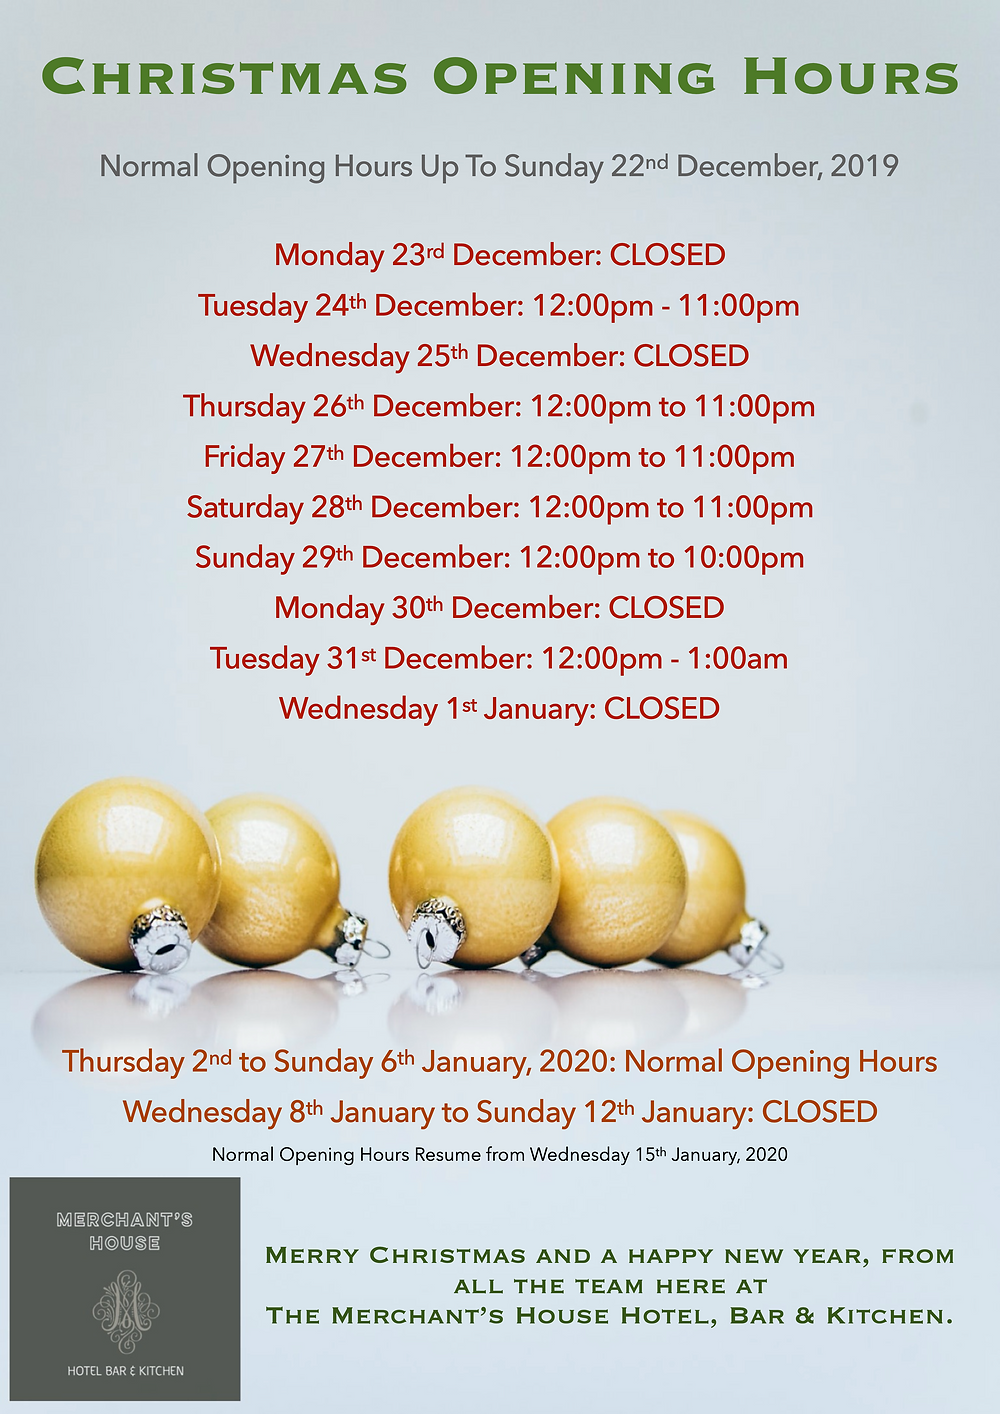 Poster displaying opening ours over the festive period at The Merchant's House